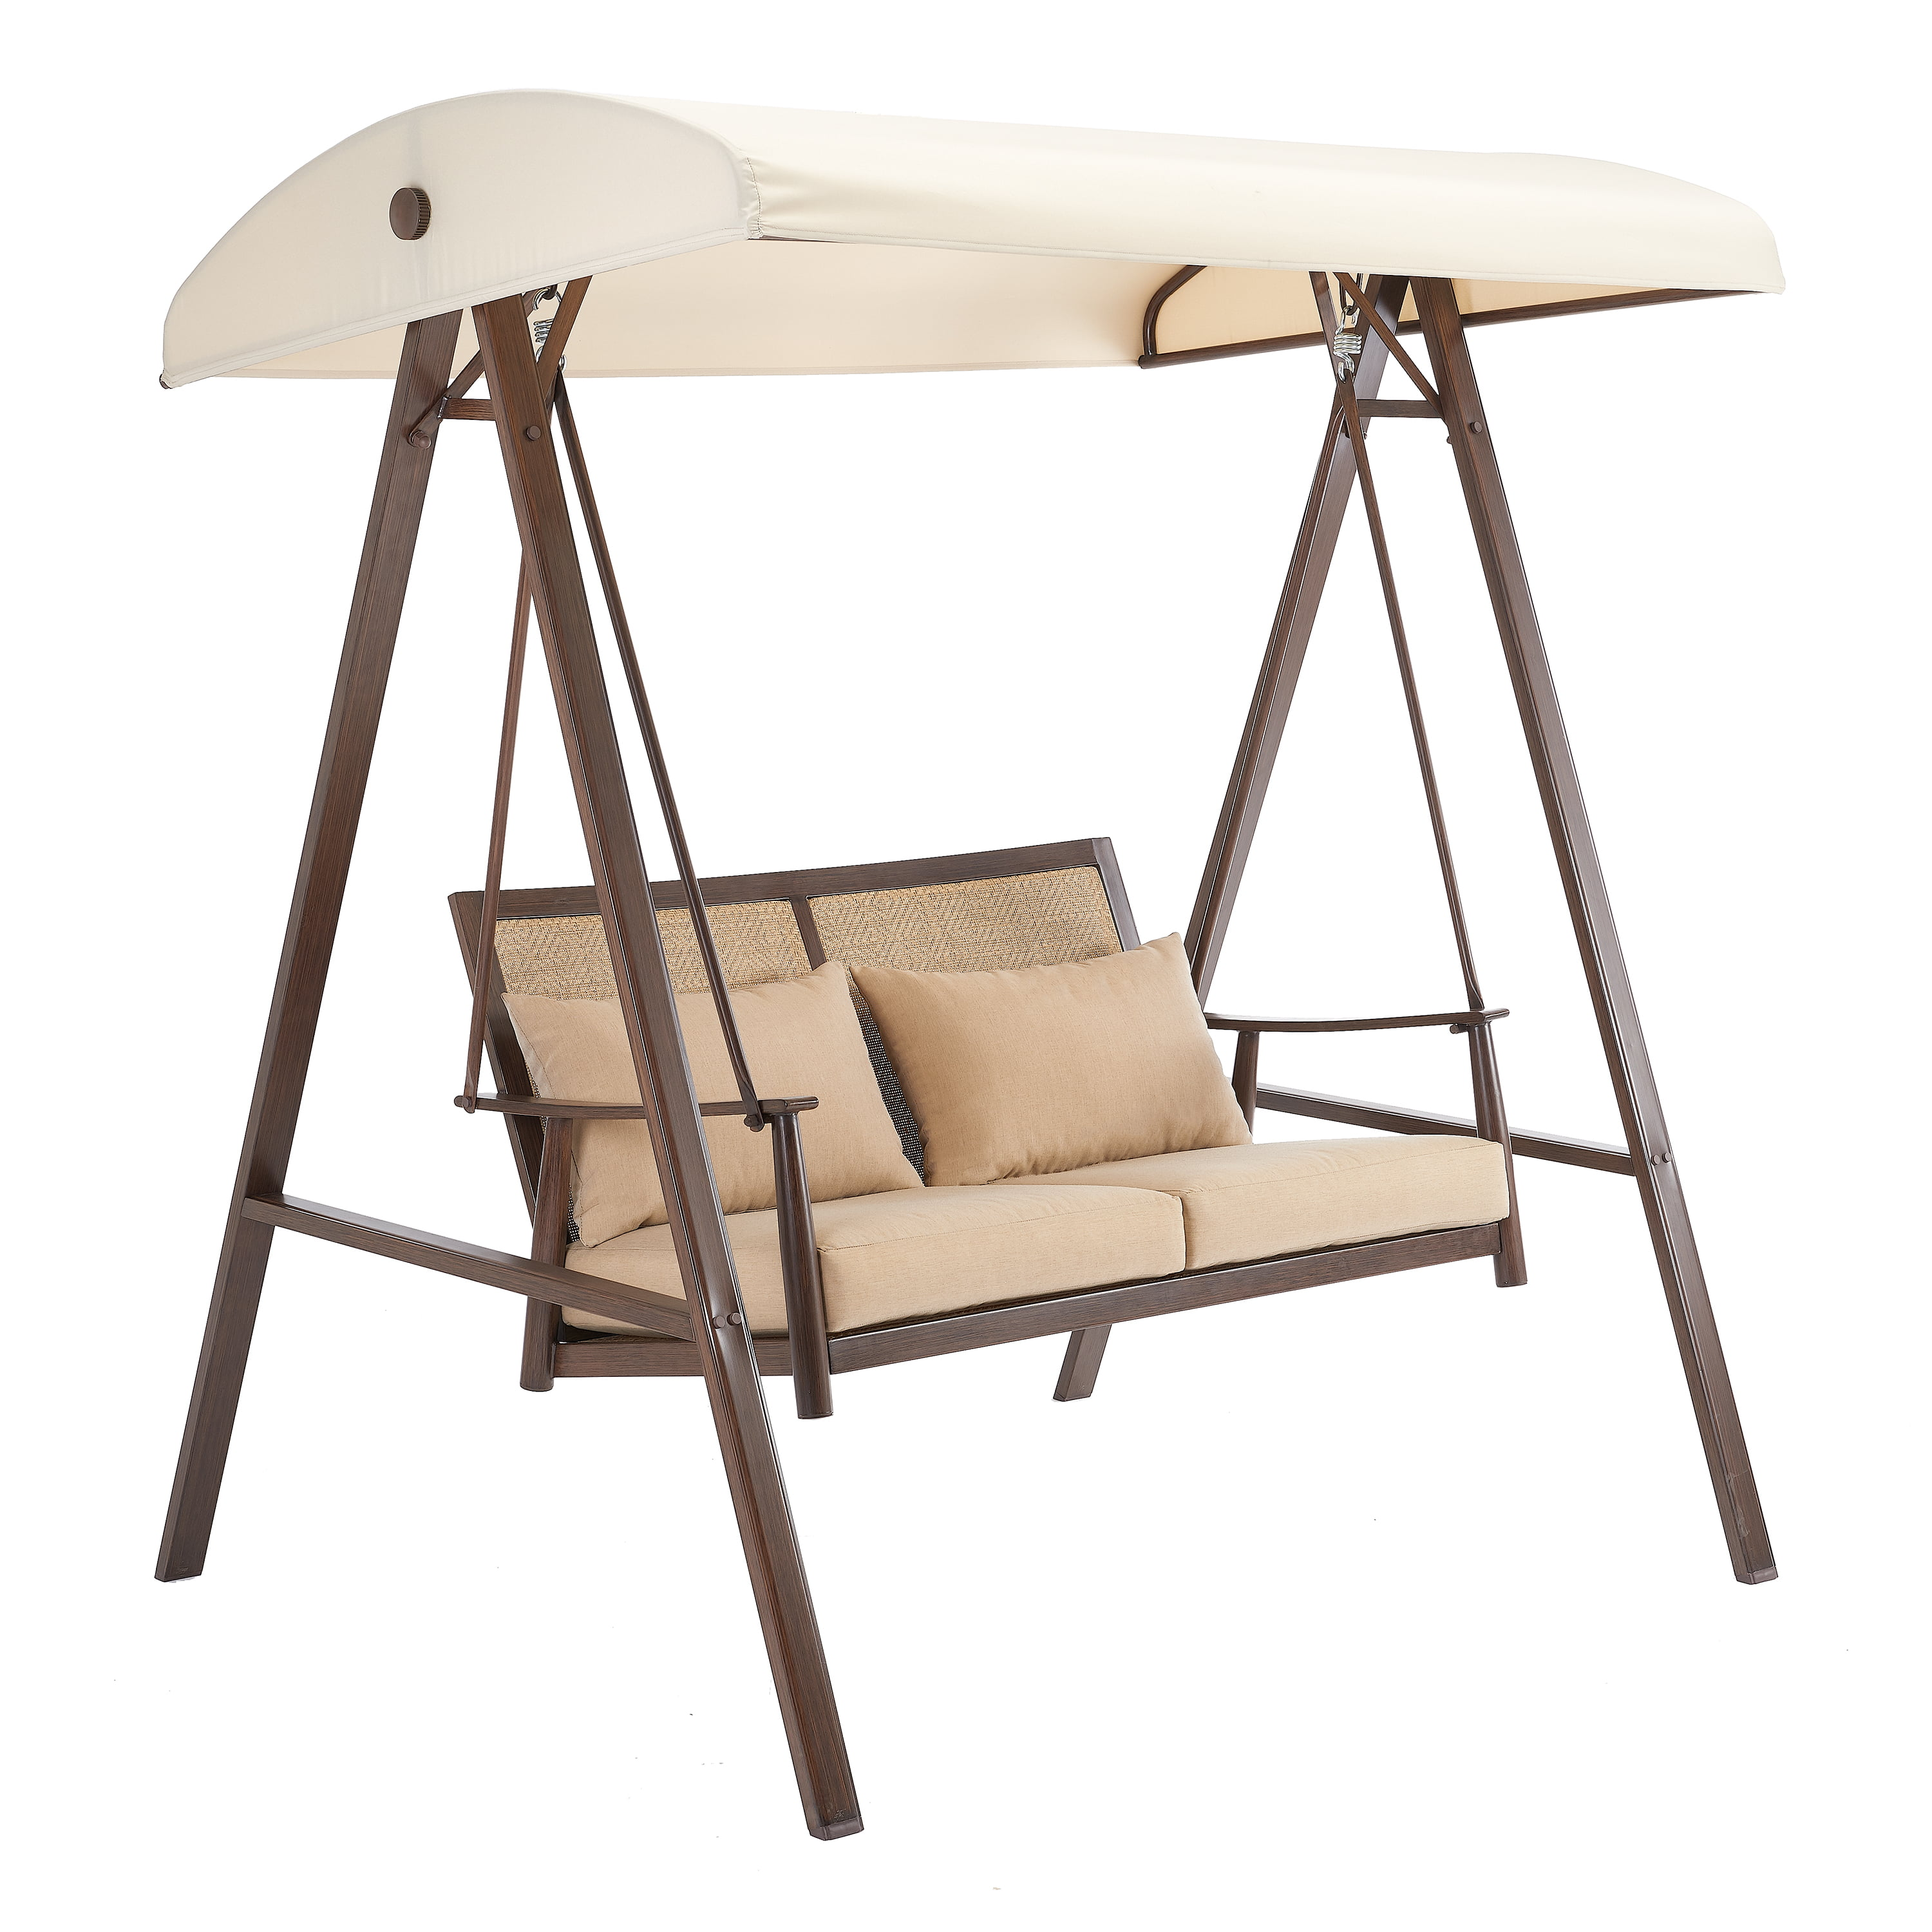 Better Homes Gardens Vaughn Canopy Patio Swing With Beige Cushions